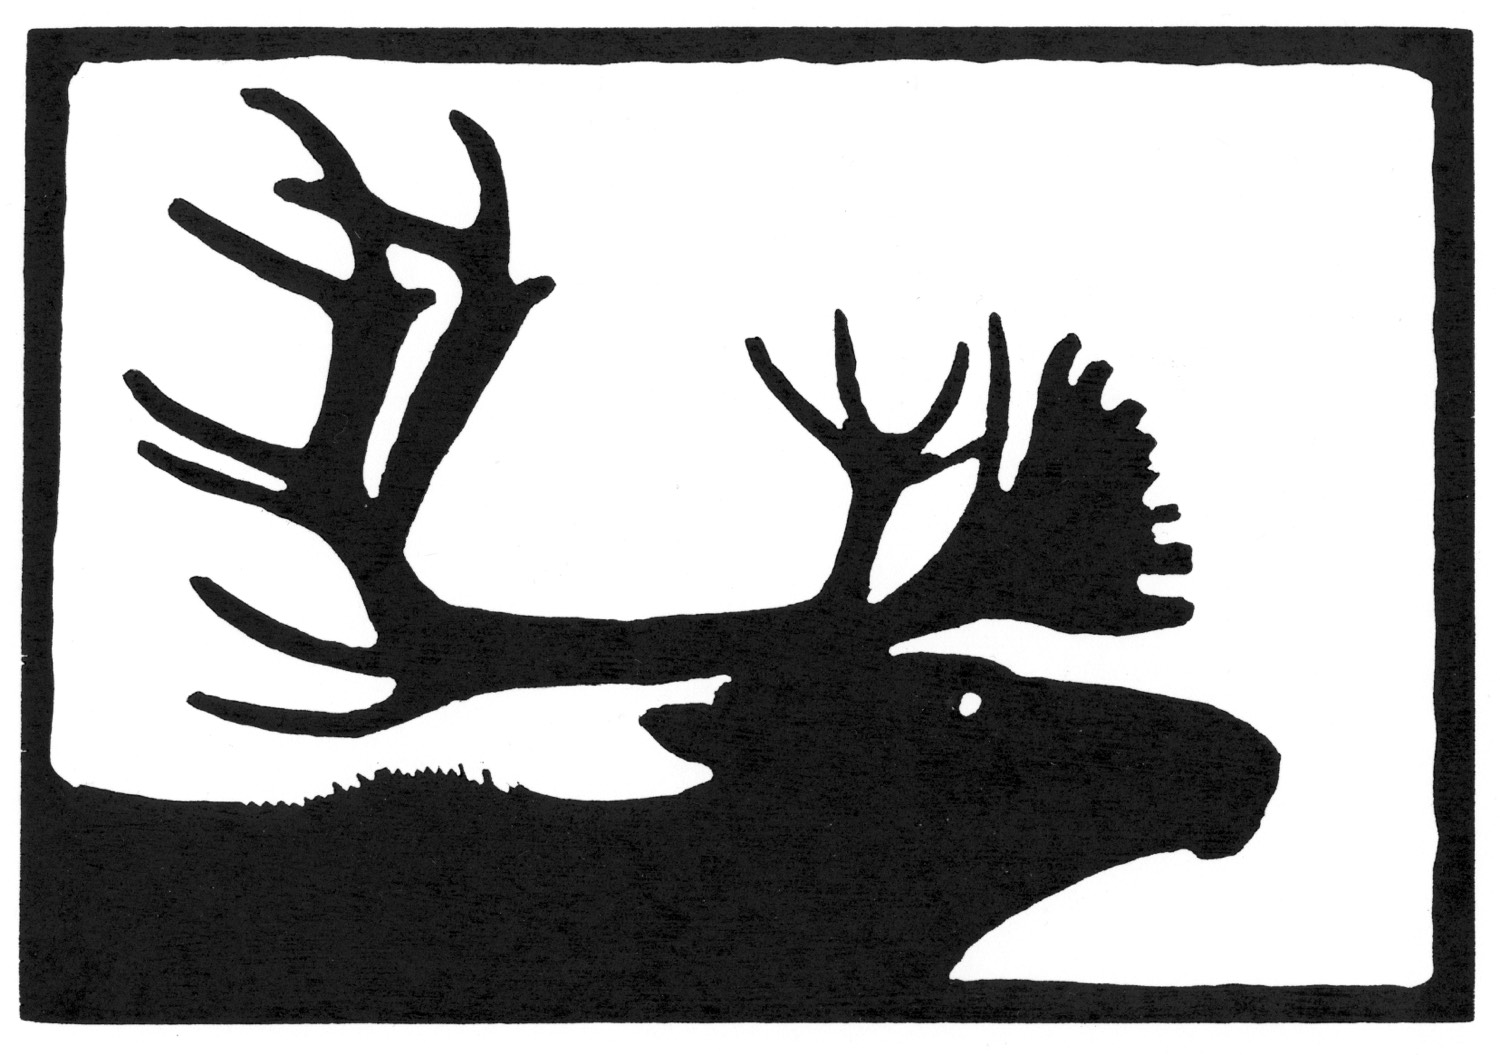 Caribou Bull • © Fred Montague  $48 • image 8 x 5.5 • mat 14 x 11  Edition size: 88 • status: available